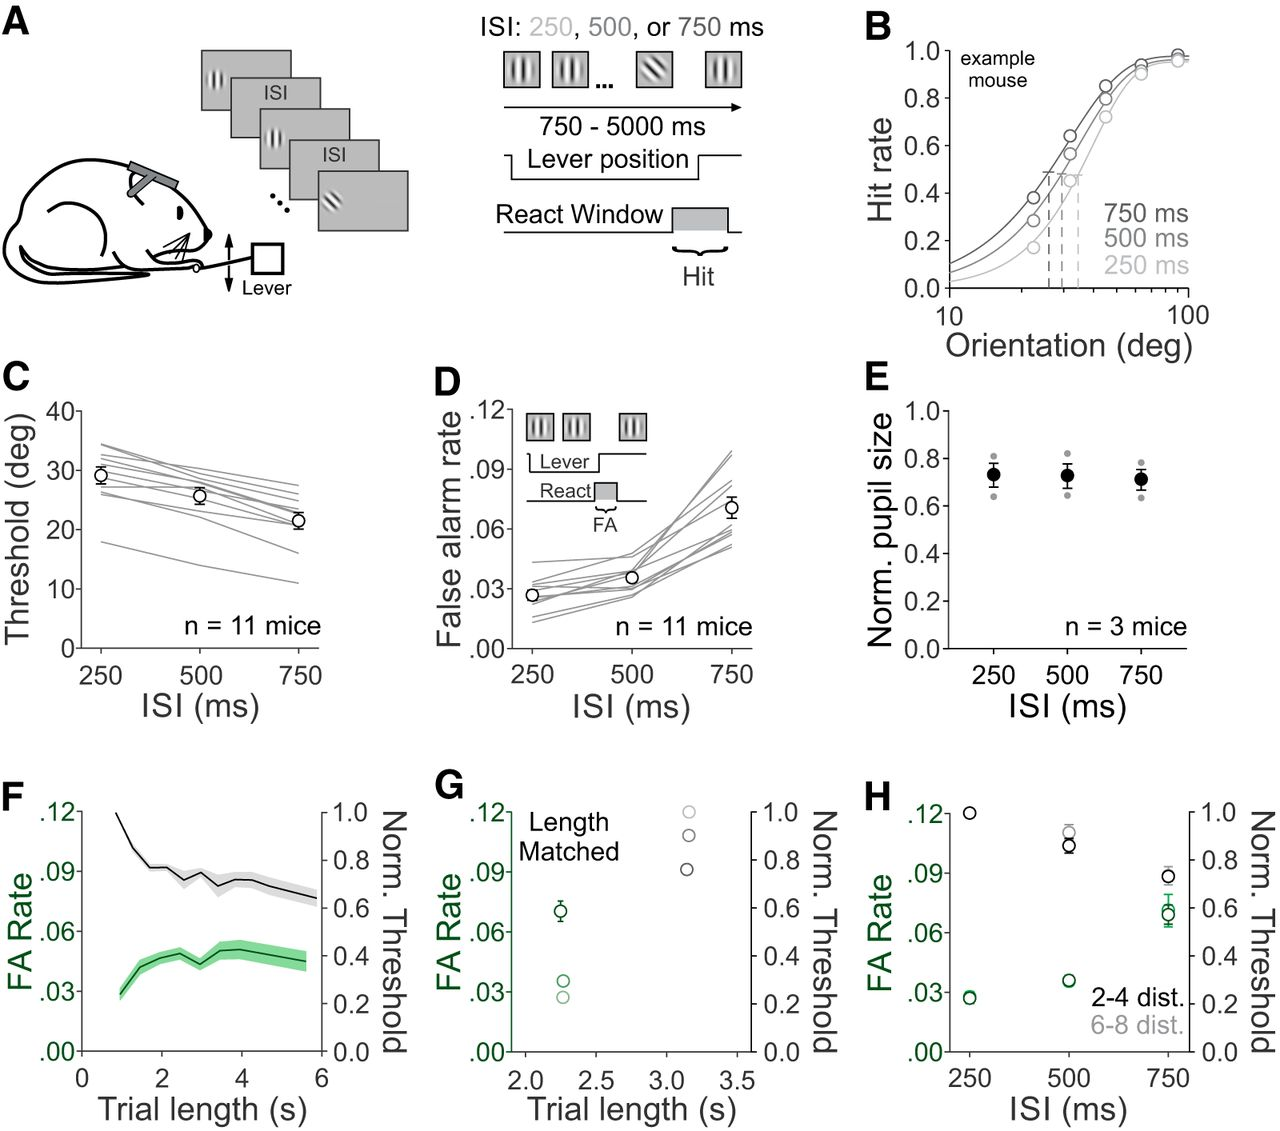 Neuronal Adaptation Reveals a Suboptimal Decoding of Orientation